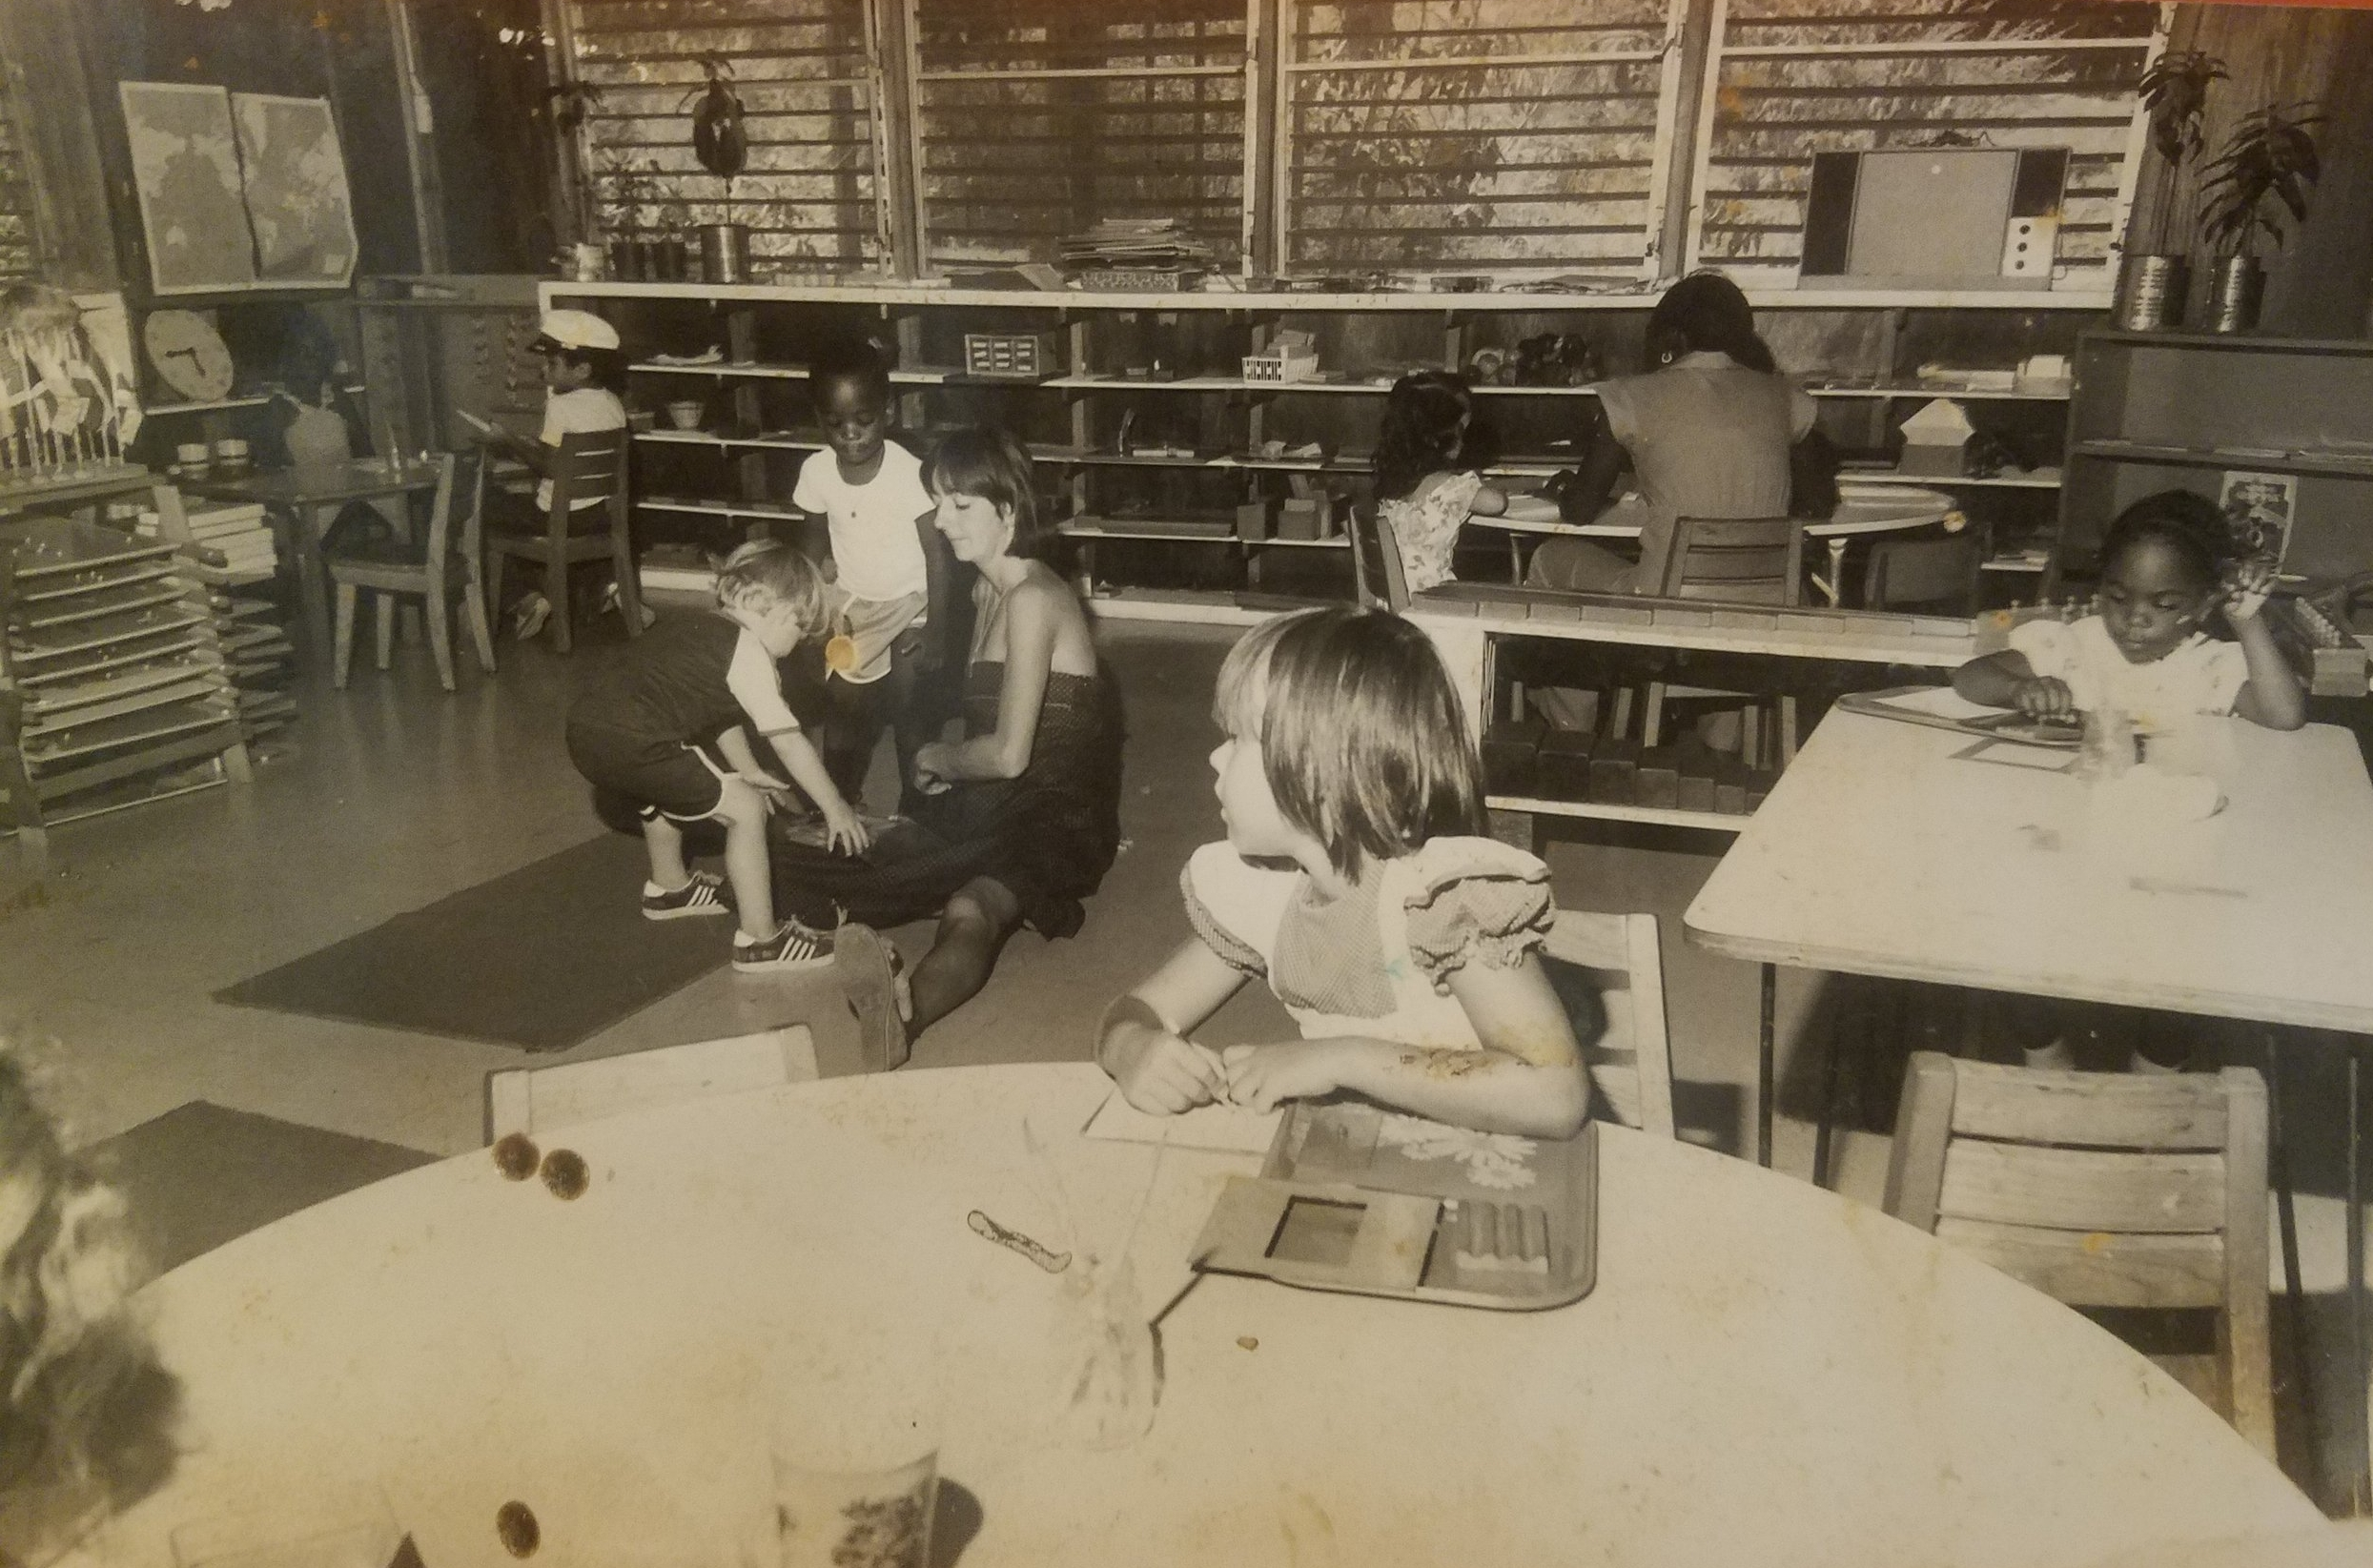 Ms. Shournagh McWeeney teaching a Primary class, circa 1970.Over 45 years later, her legacy as a key educator, leader, and friend of the VIMSIA family is stronger than ever.